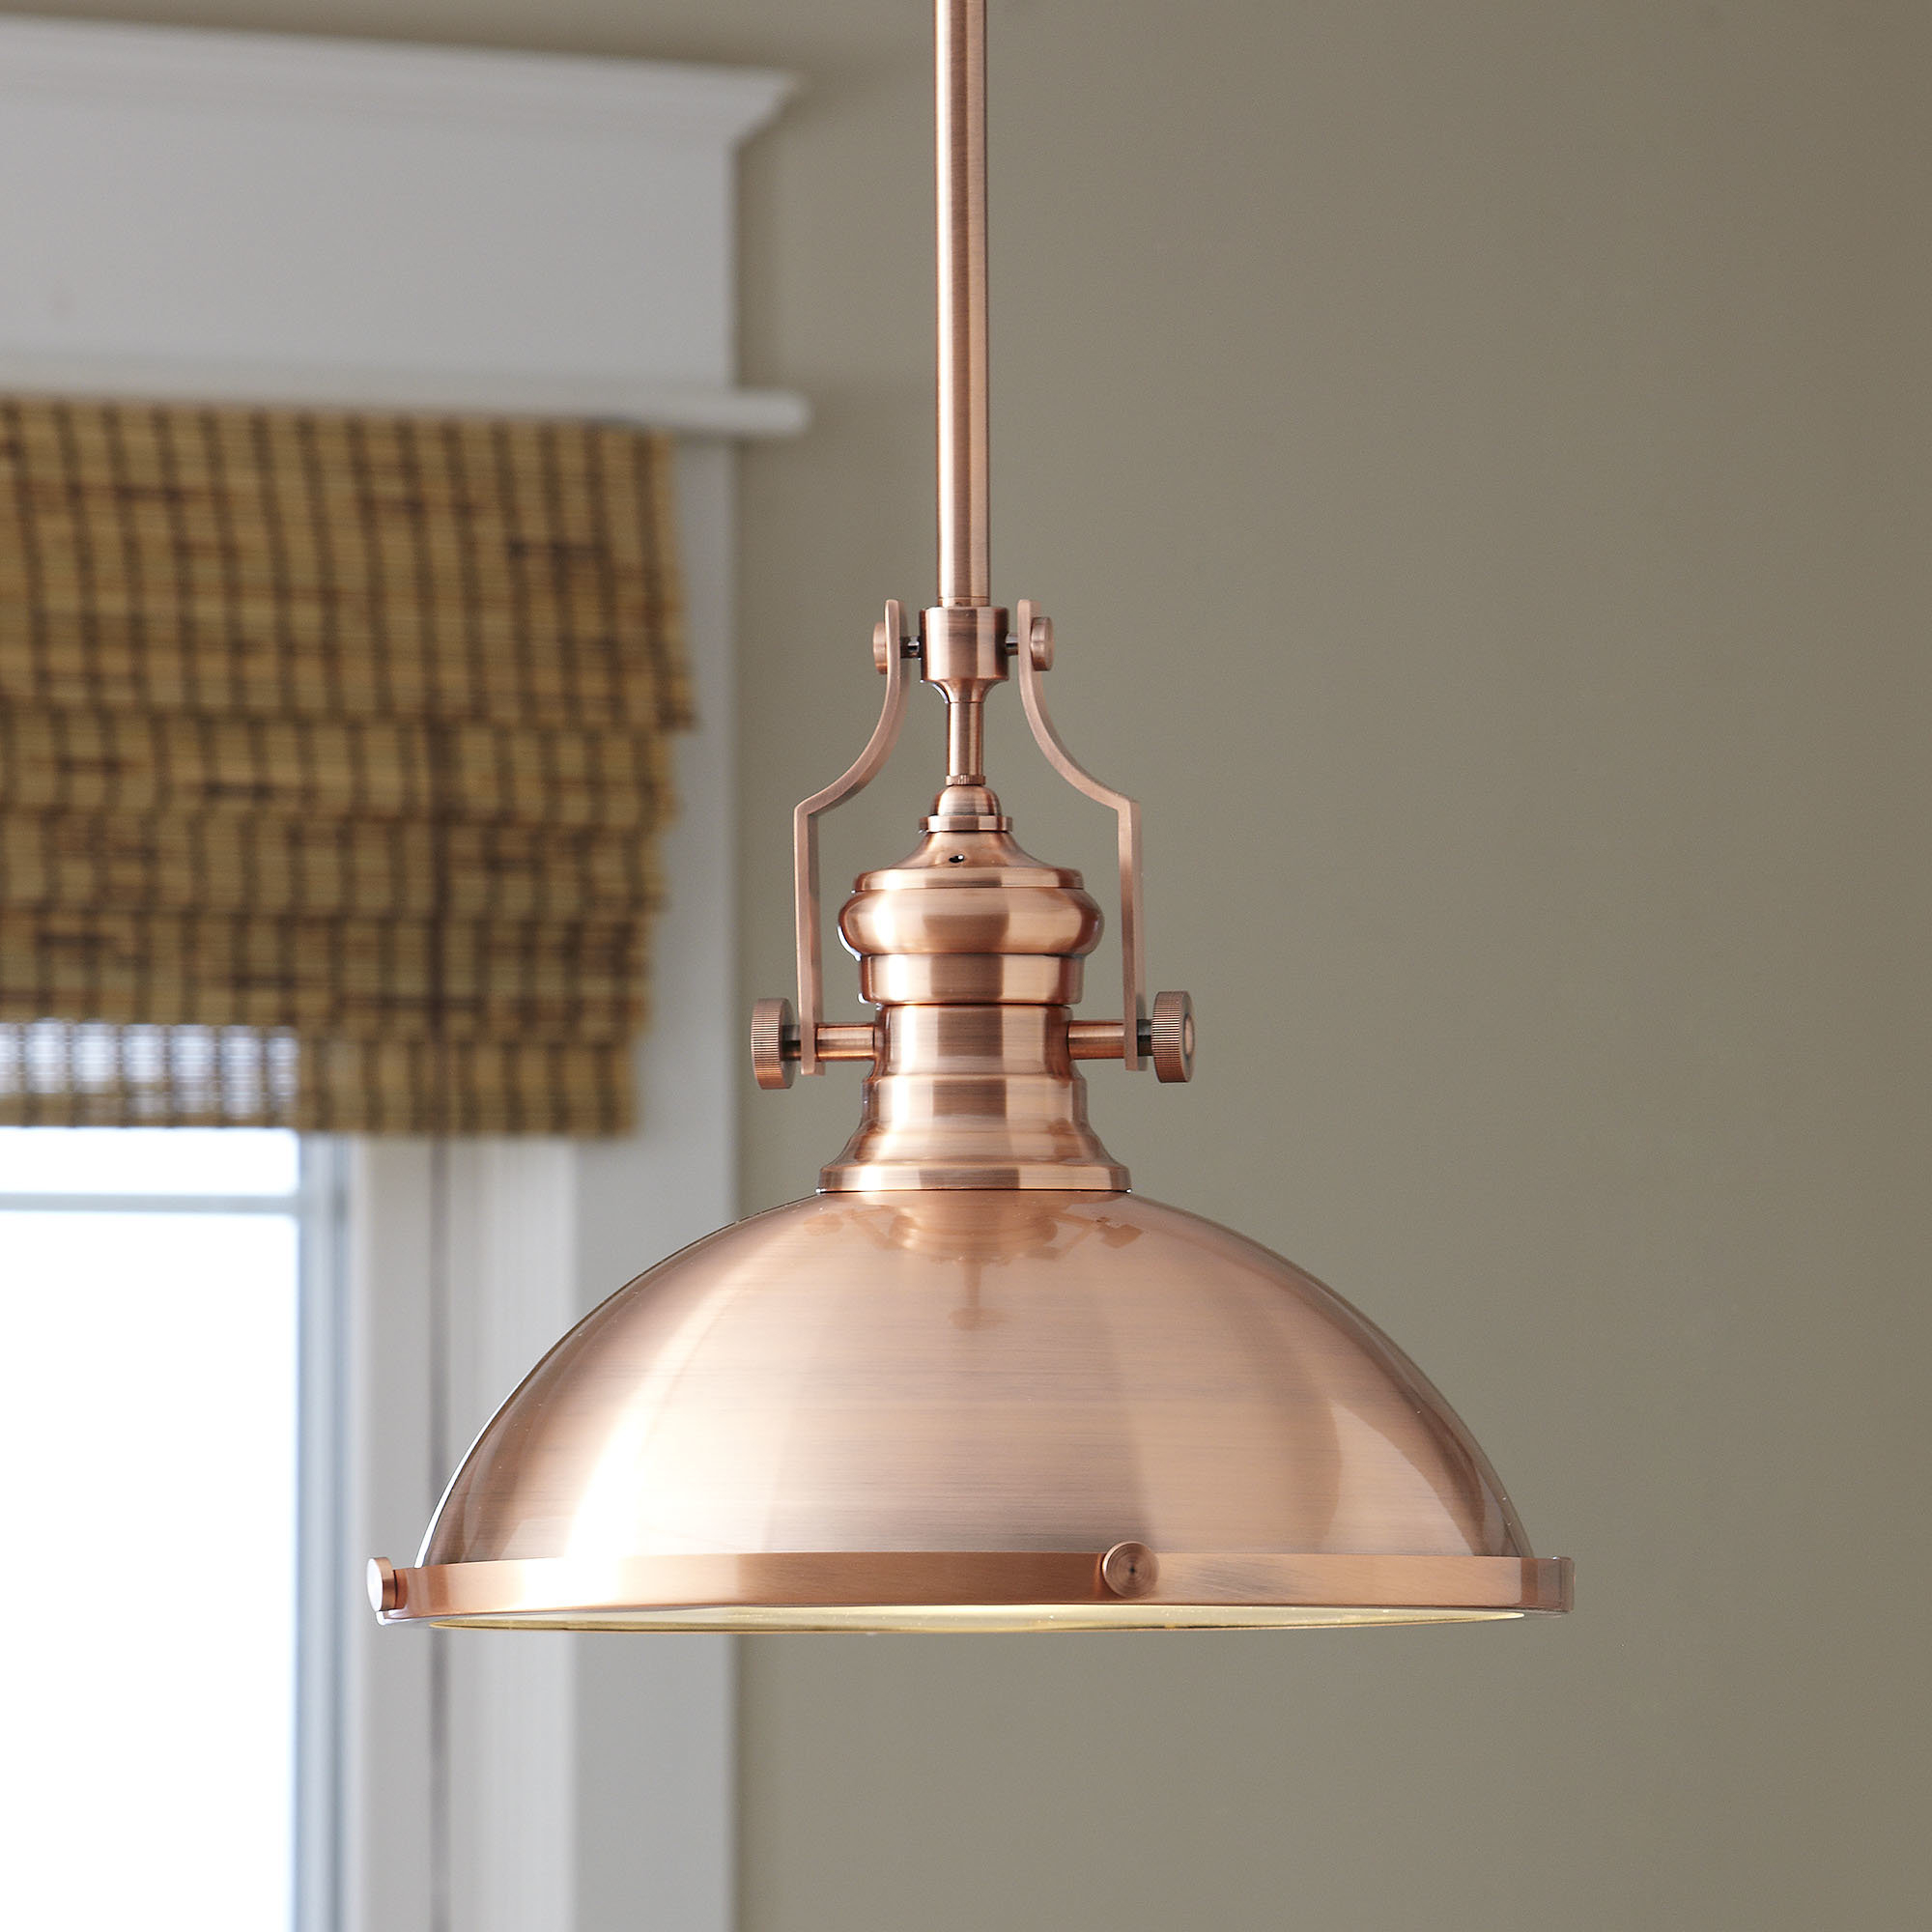 1 Light Single Dome Pendant Within Freeda 1 Light Single Dome Pendants (View 7 of 30)